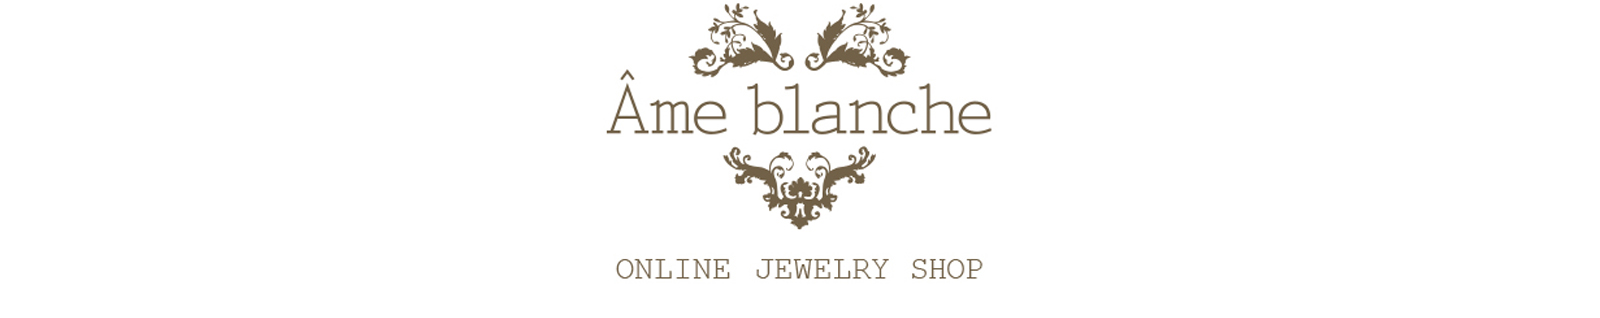 Ame blanche アームブランシュ Online Shop